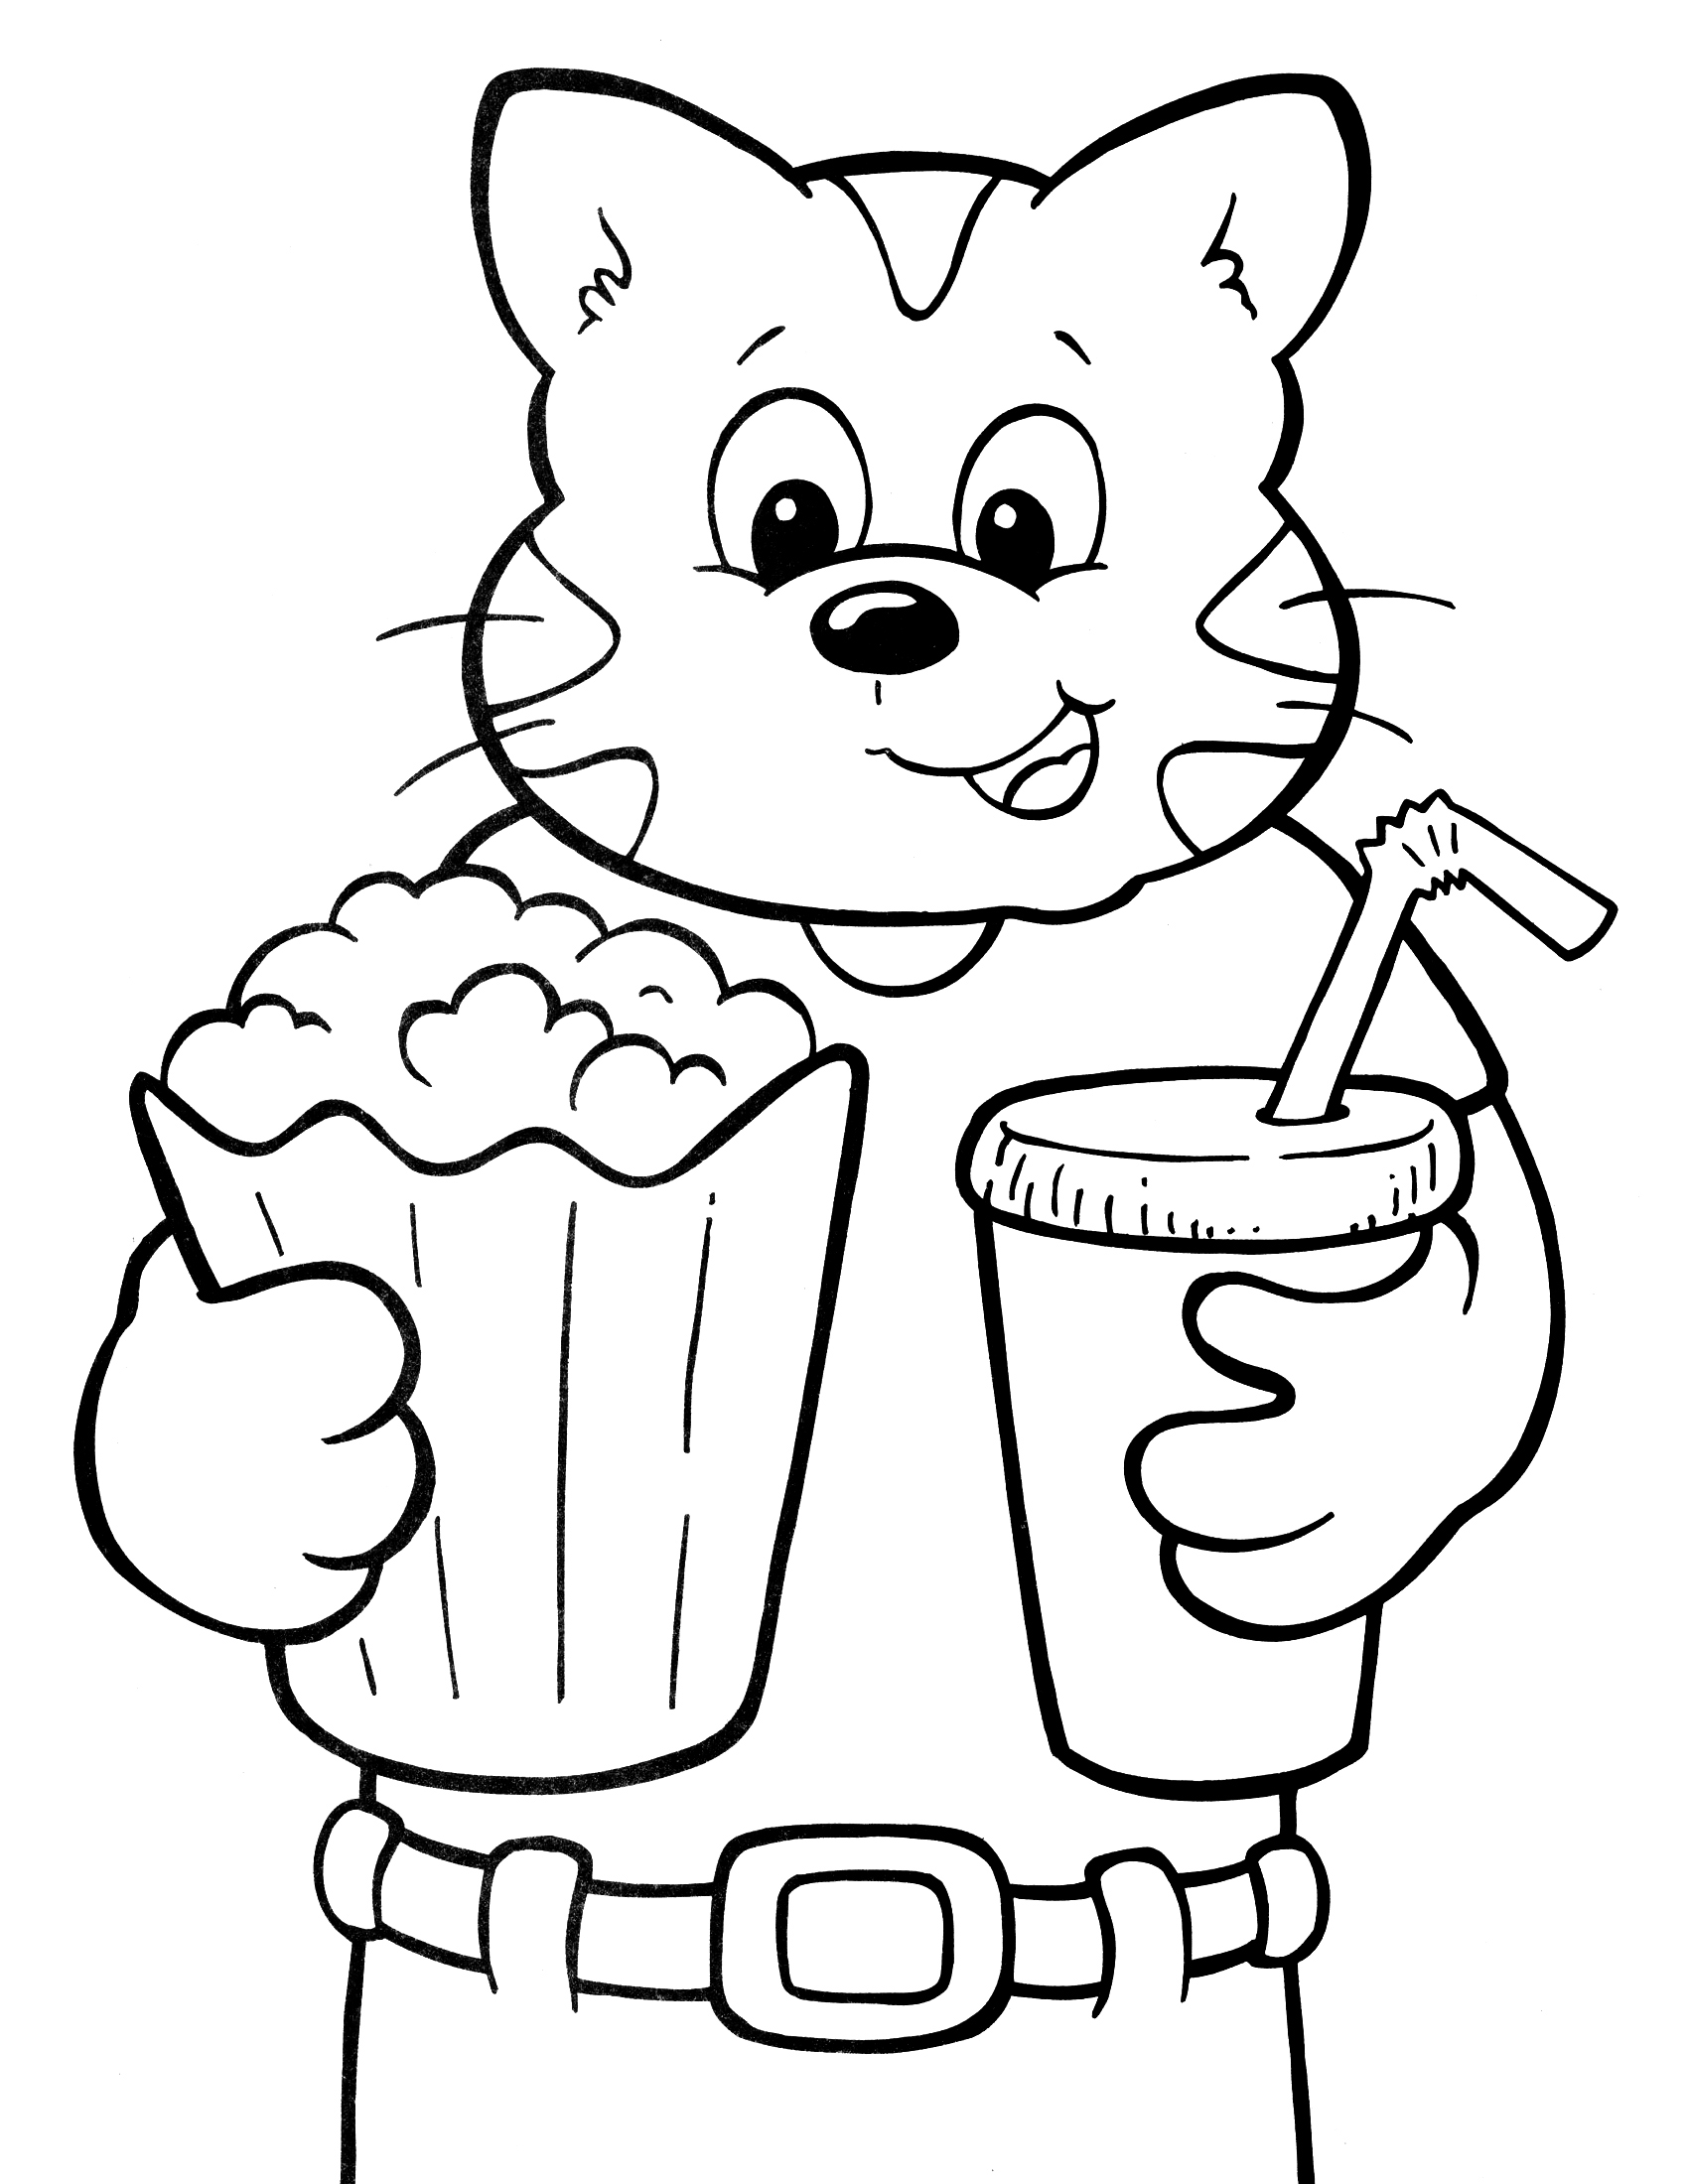 online crayola coloring pages - photo#26